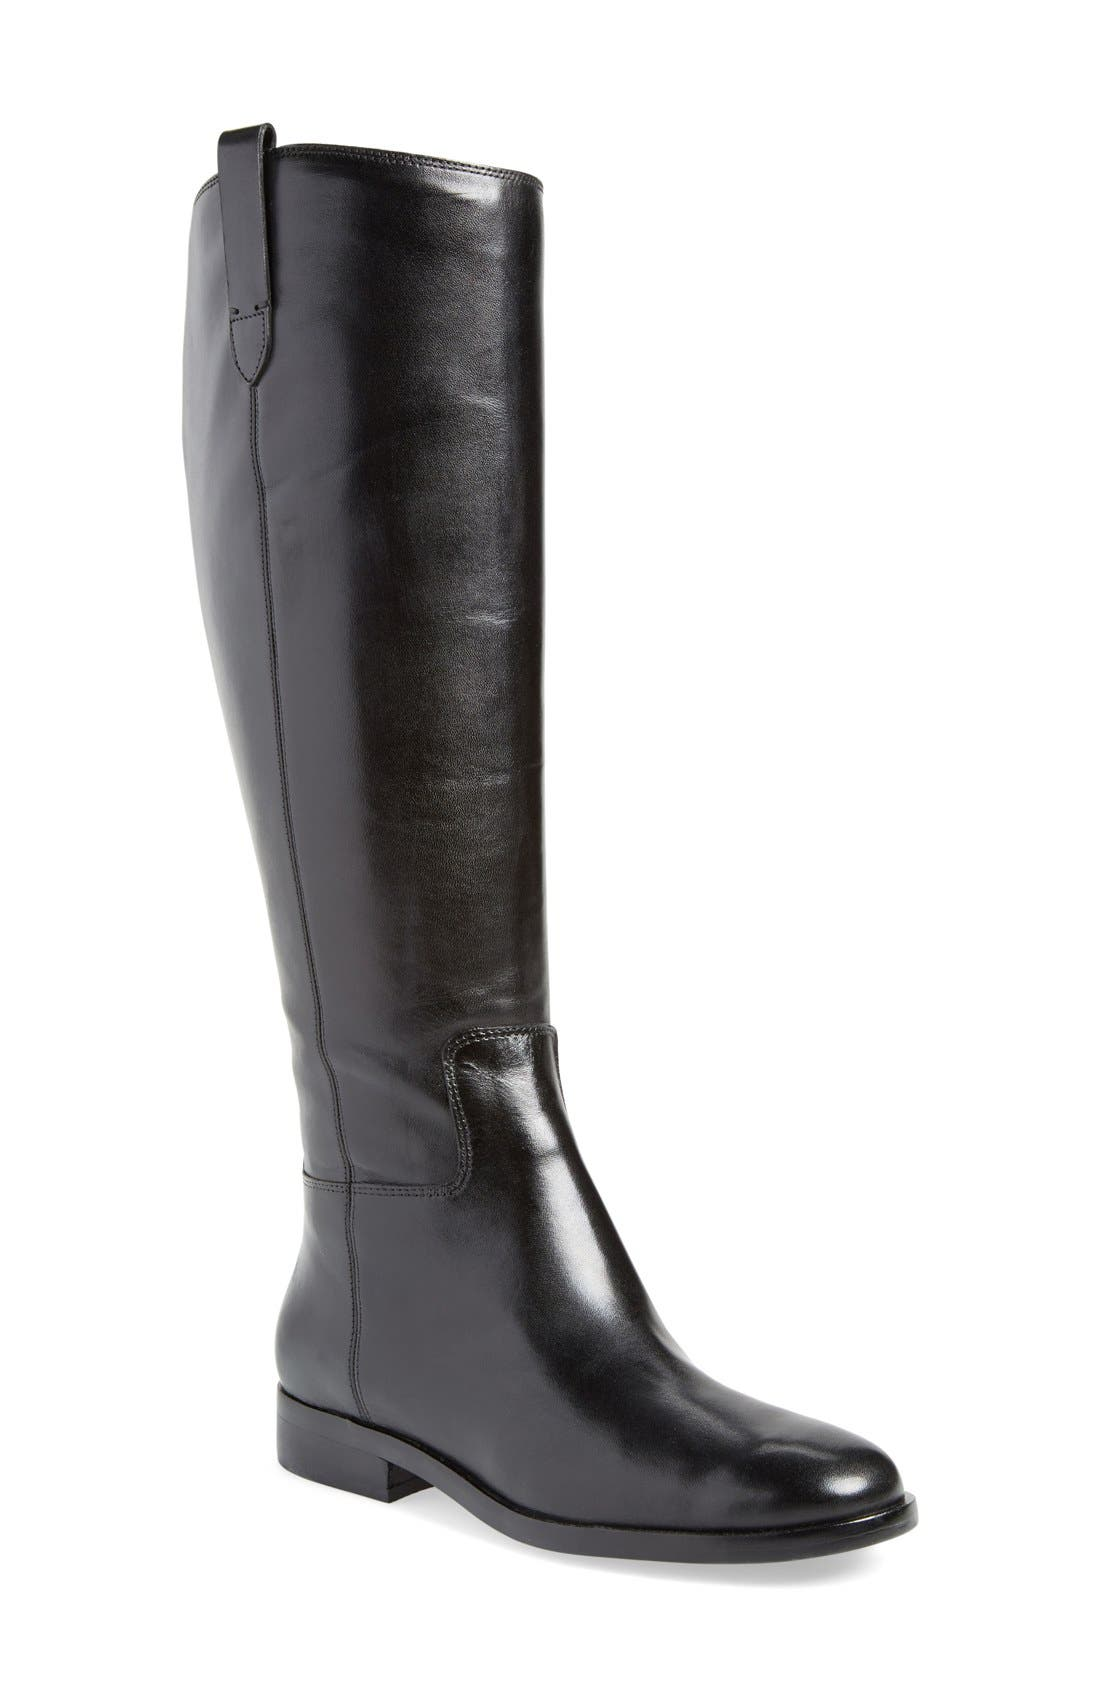 Alternate Image 1 Selected - Ivanka Trump 'Addee' Tall Riding Boot (Women)